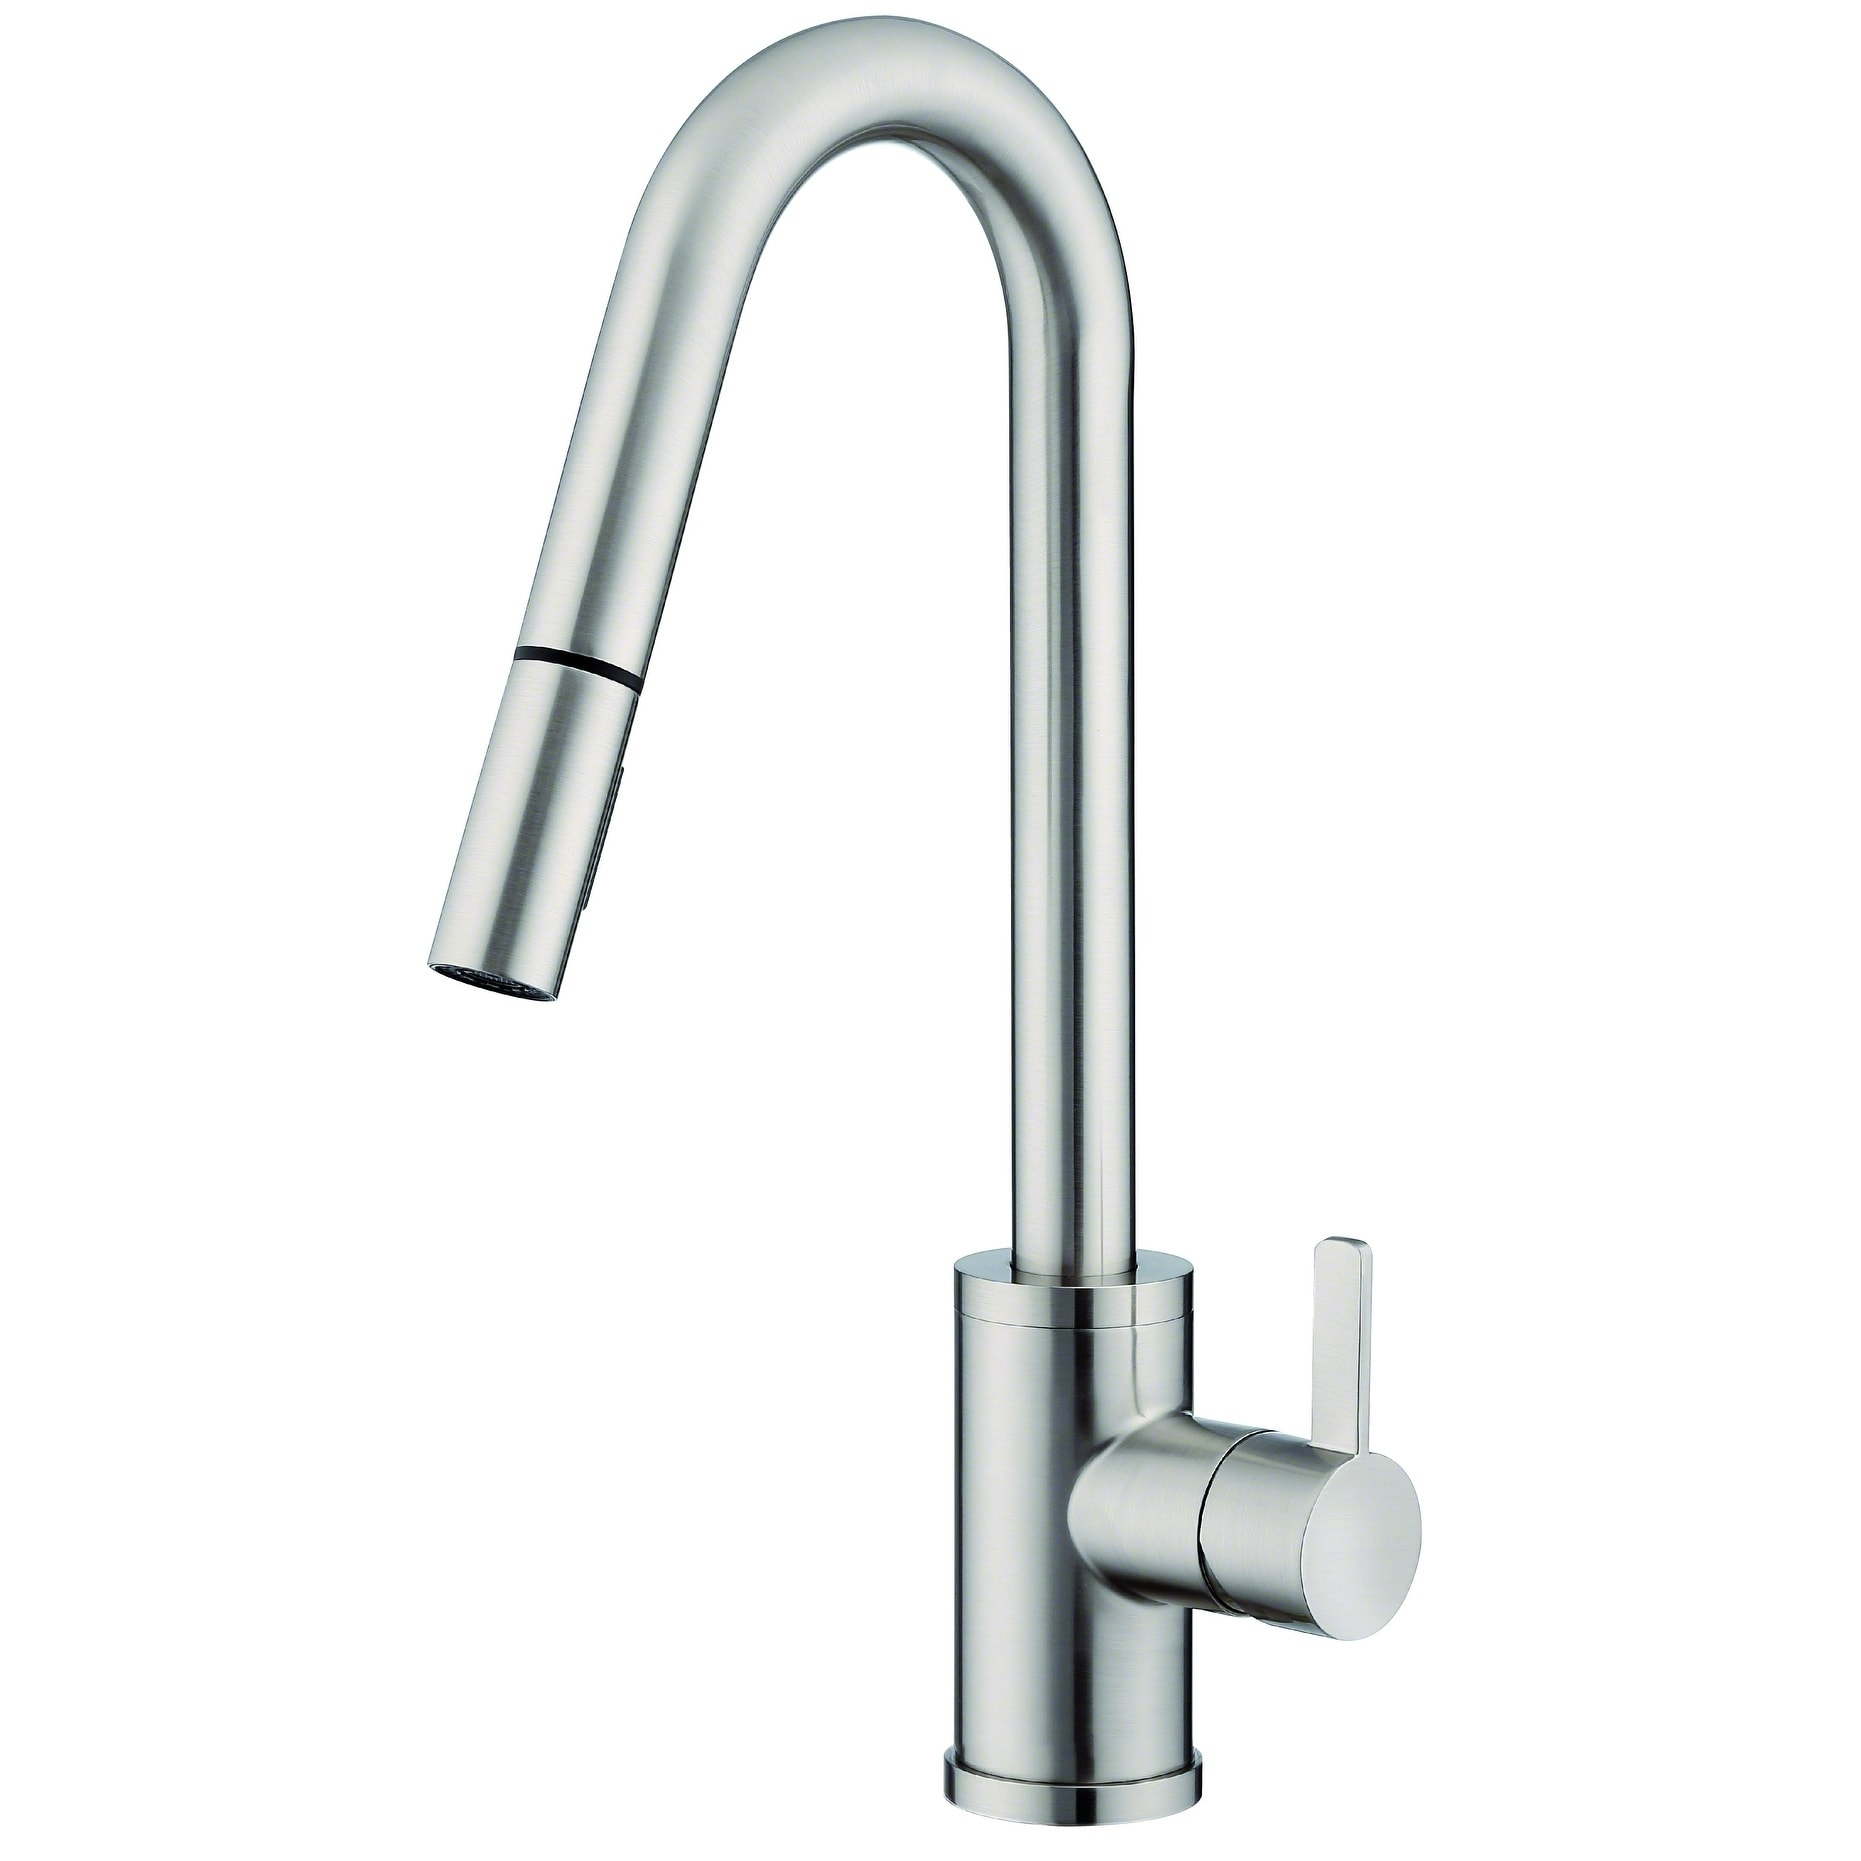 amalfi 1h pull down kitchen faucet w snapback retraction 1 75gpm stainless steel